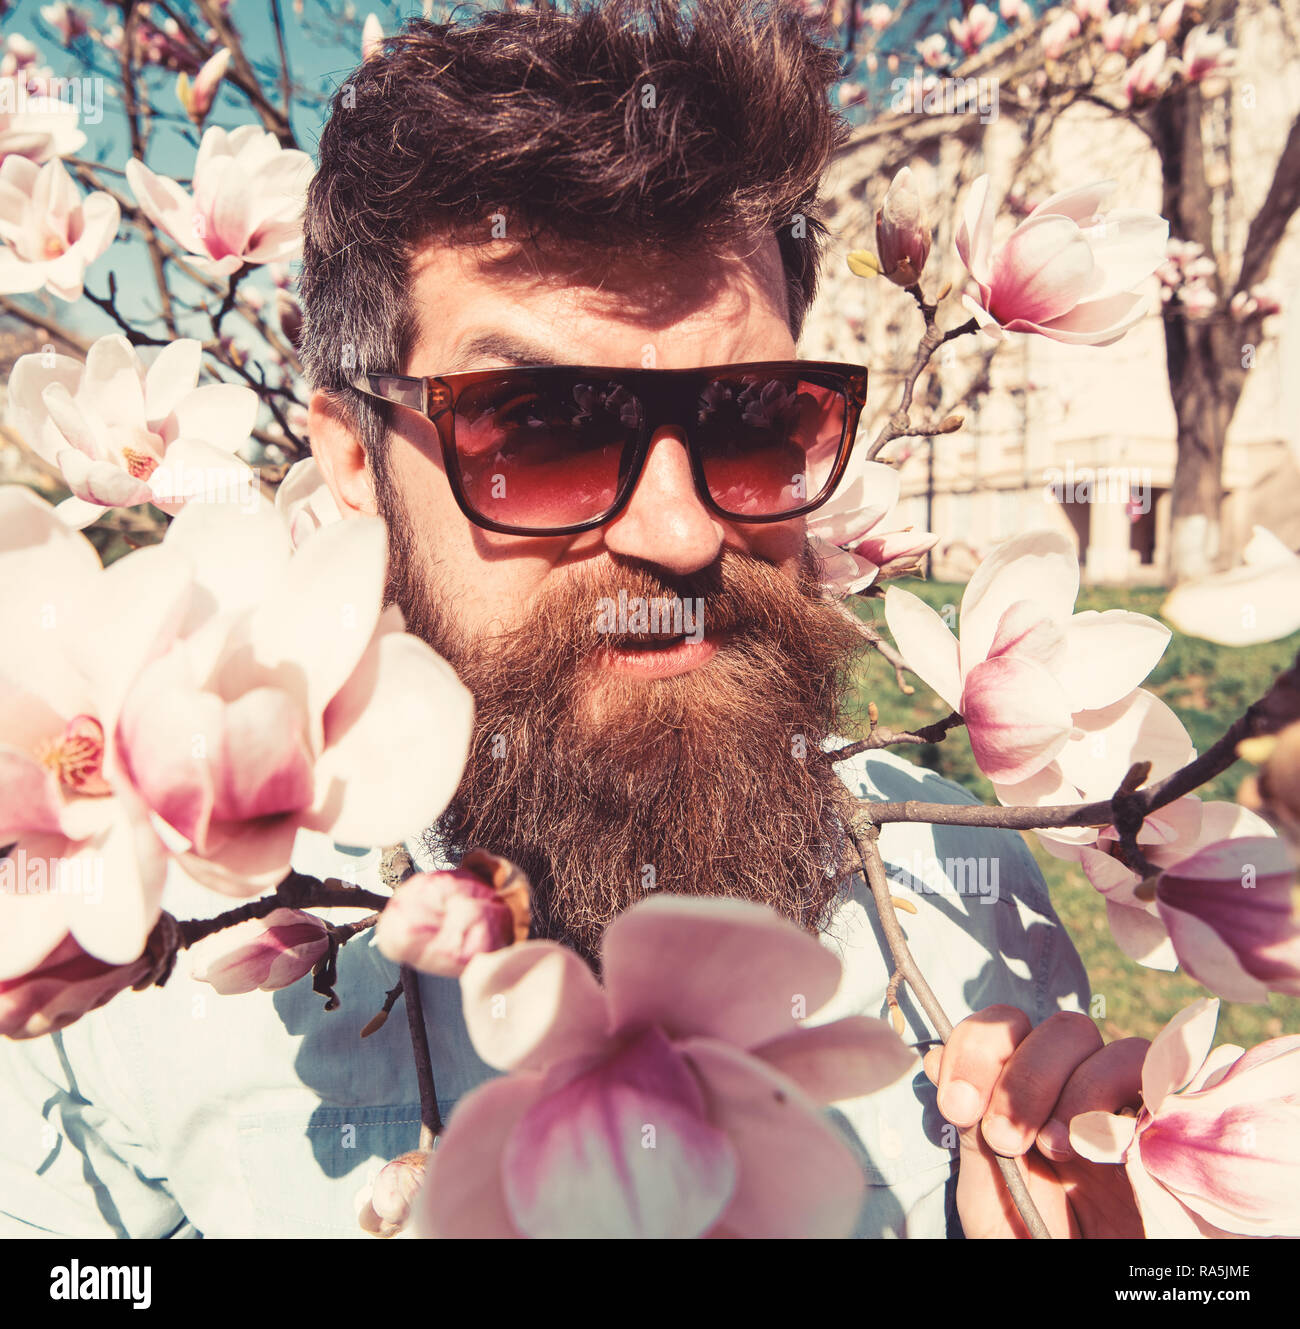 Brutal macho smiling near tender flowers on sunny day. Man with beard and mustache wears sunglasses, magnolia flowers background. Brutality and tenderness concept. Hipster with fashionable sunglasses. - Stock Image